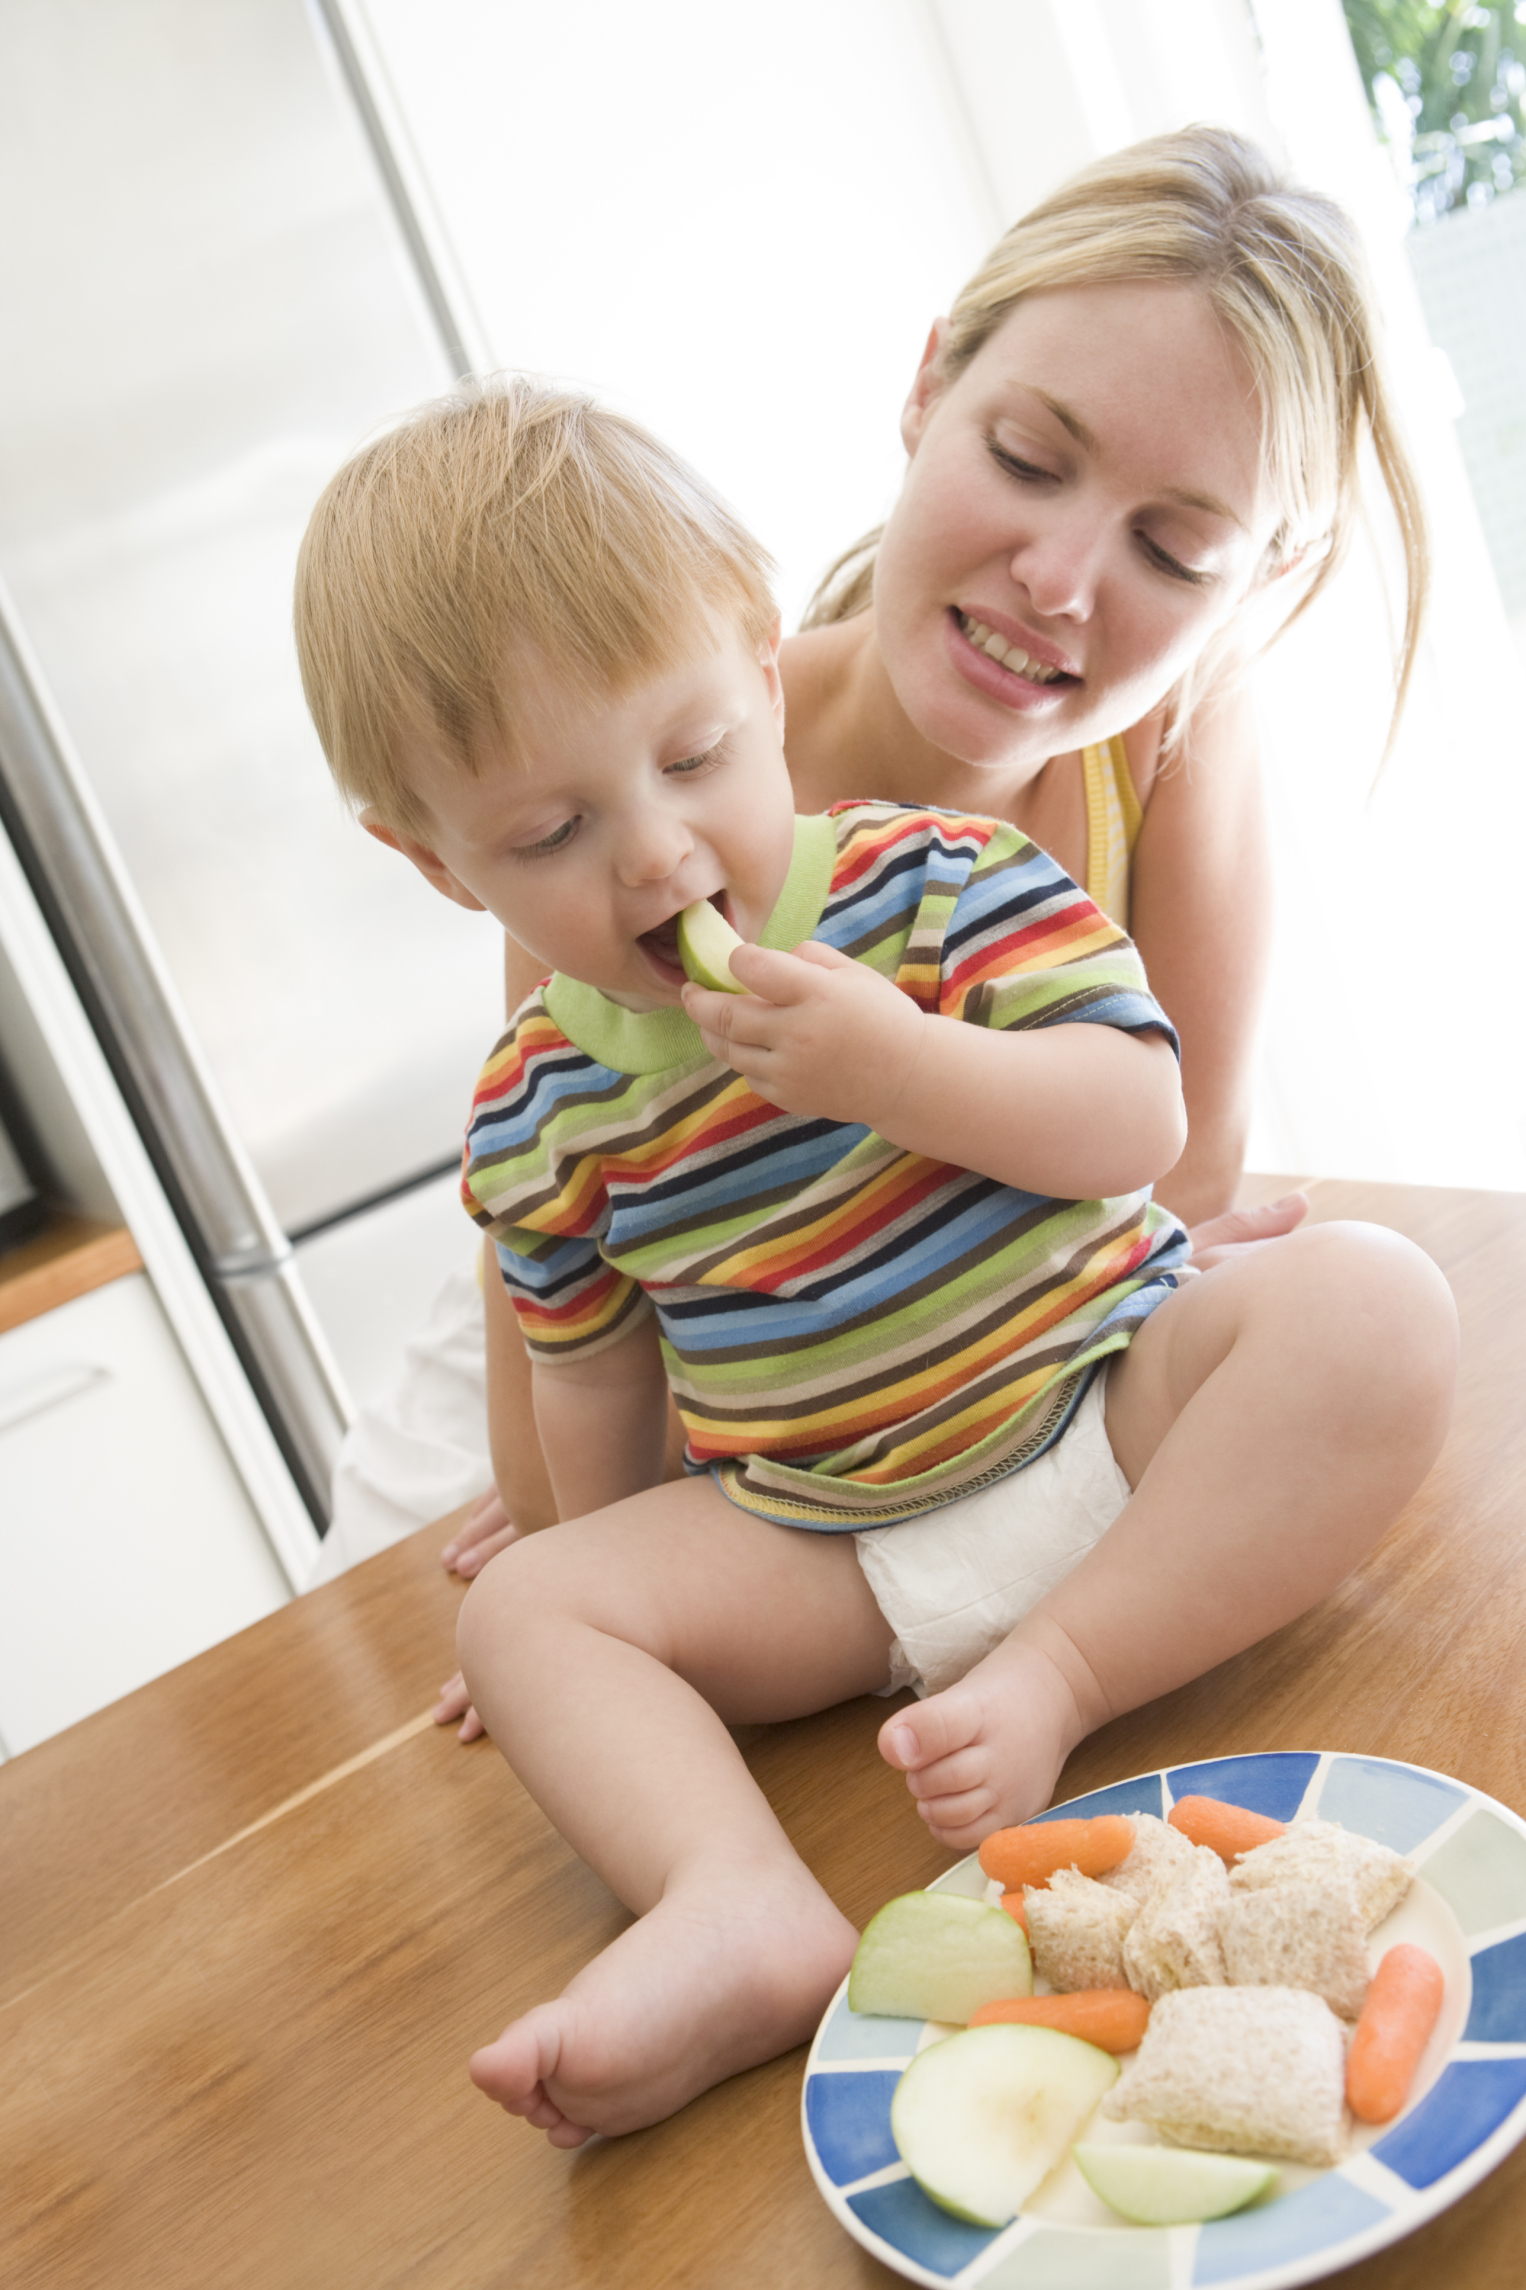 Mother and baby in kitchen eating fruit and vegeta